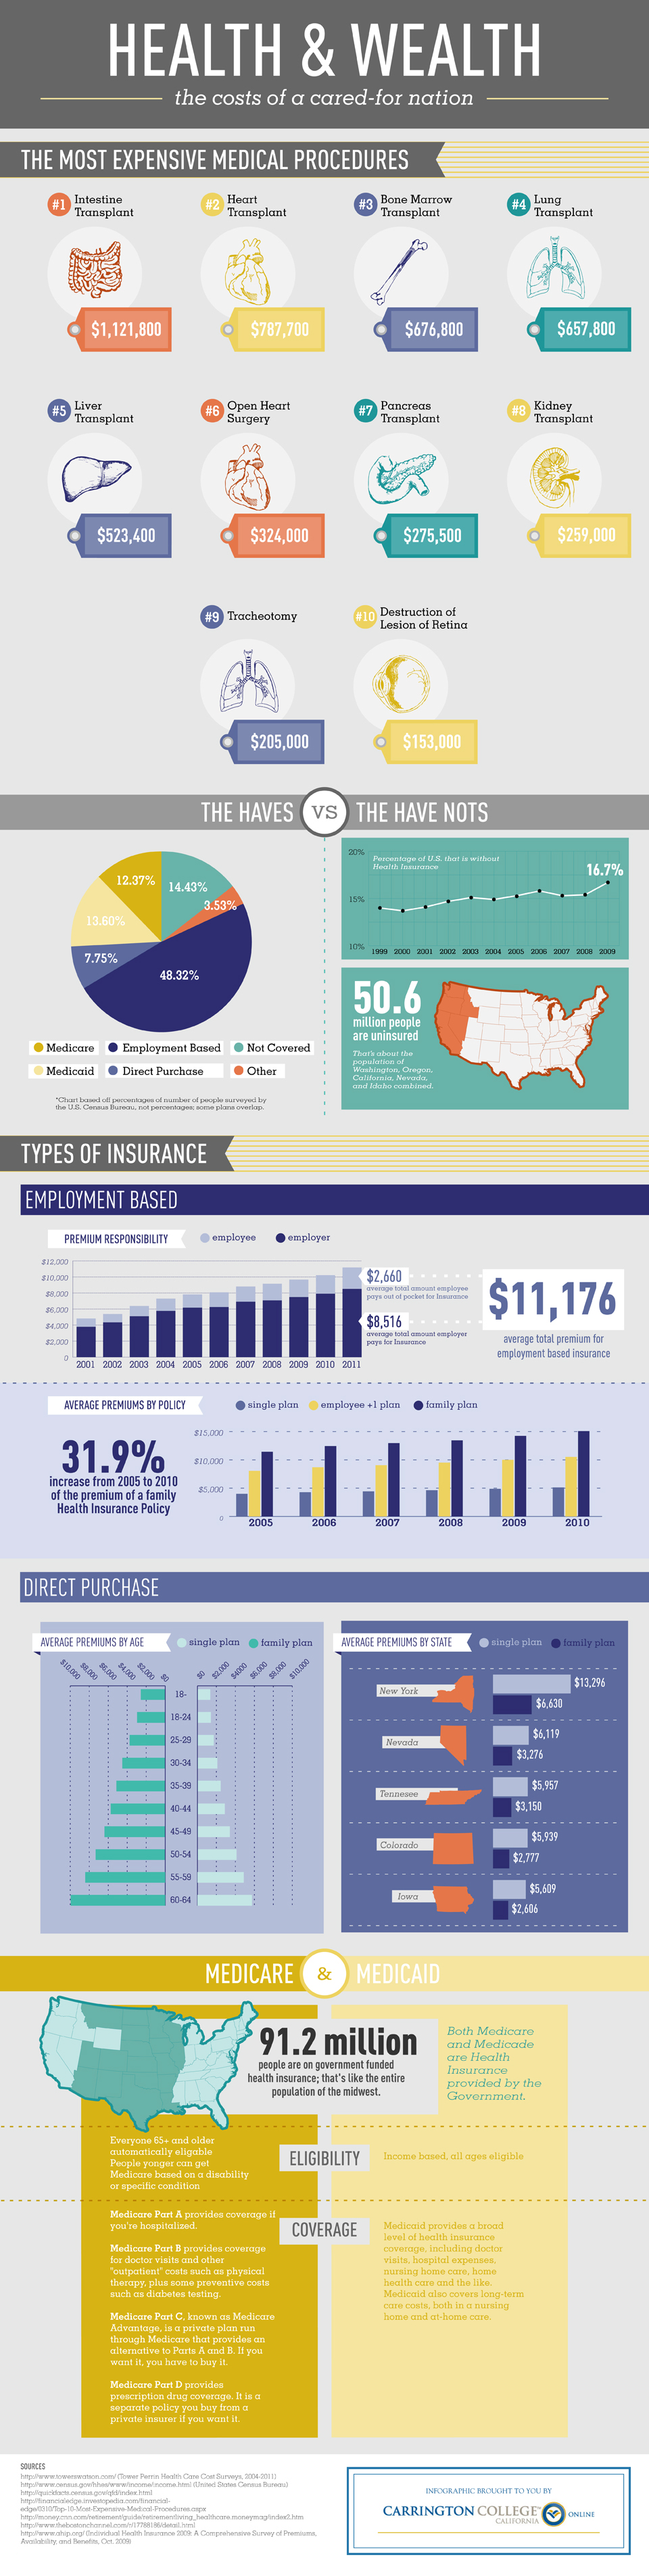 Health & Wealth Infographic